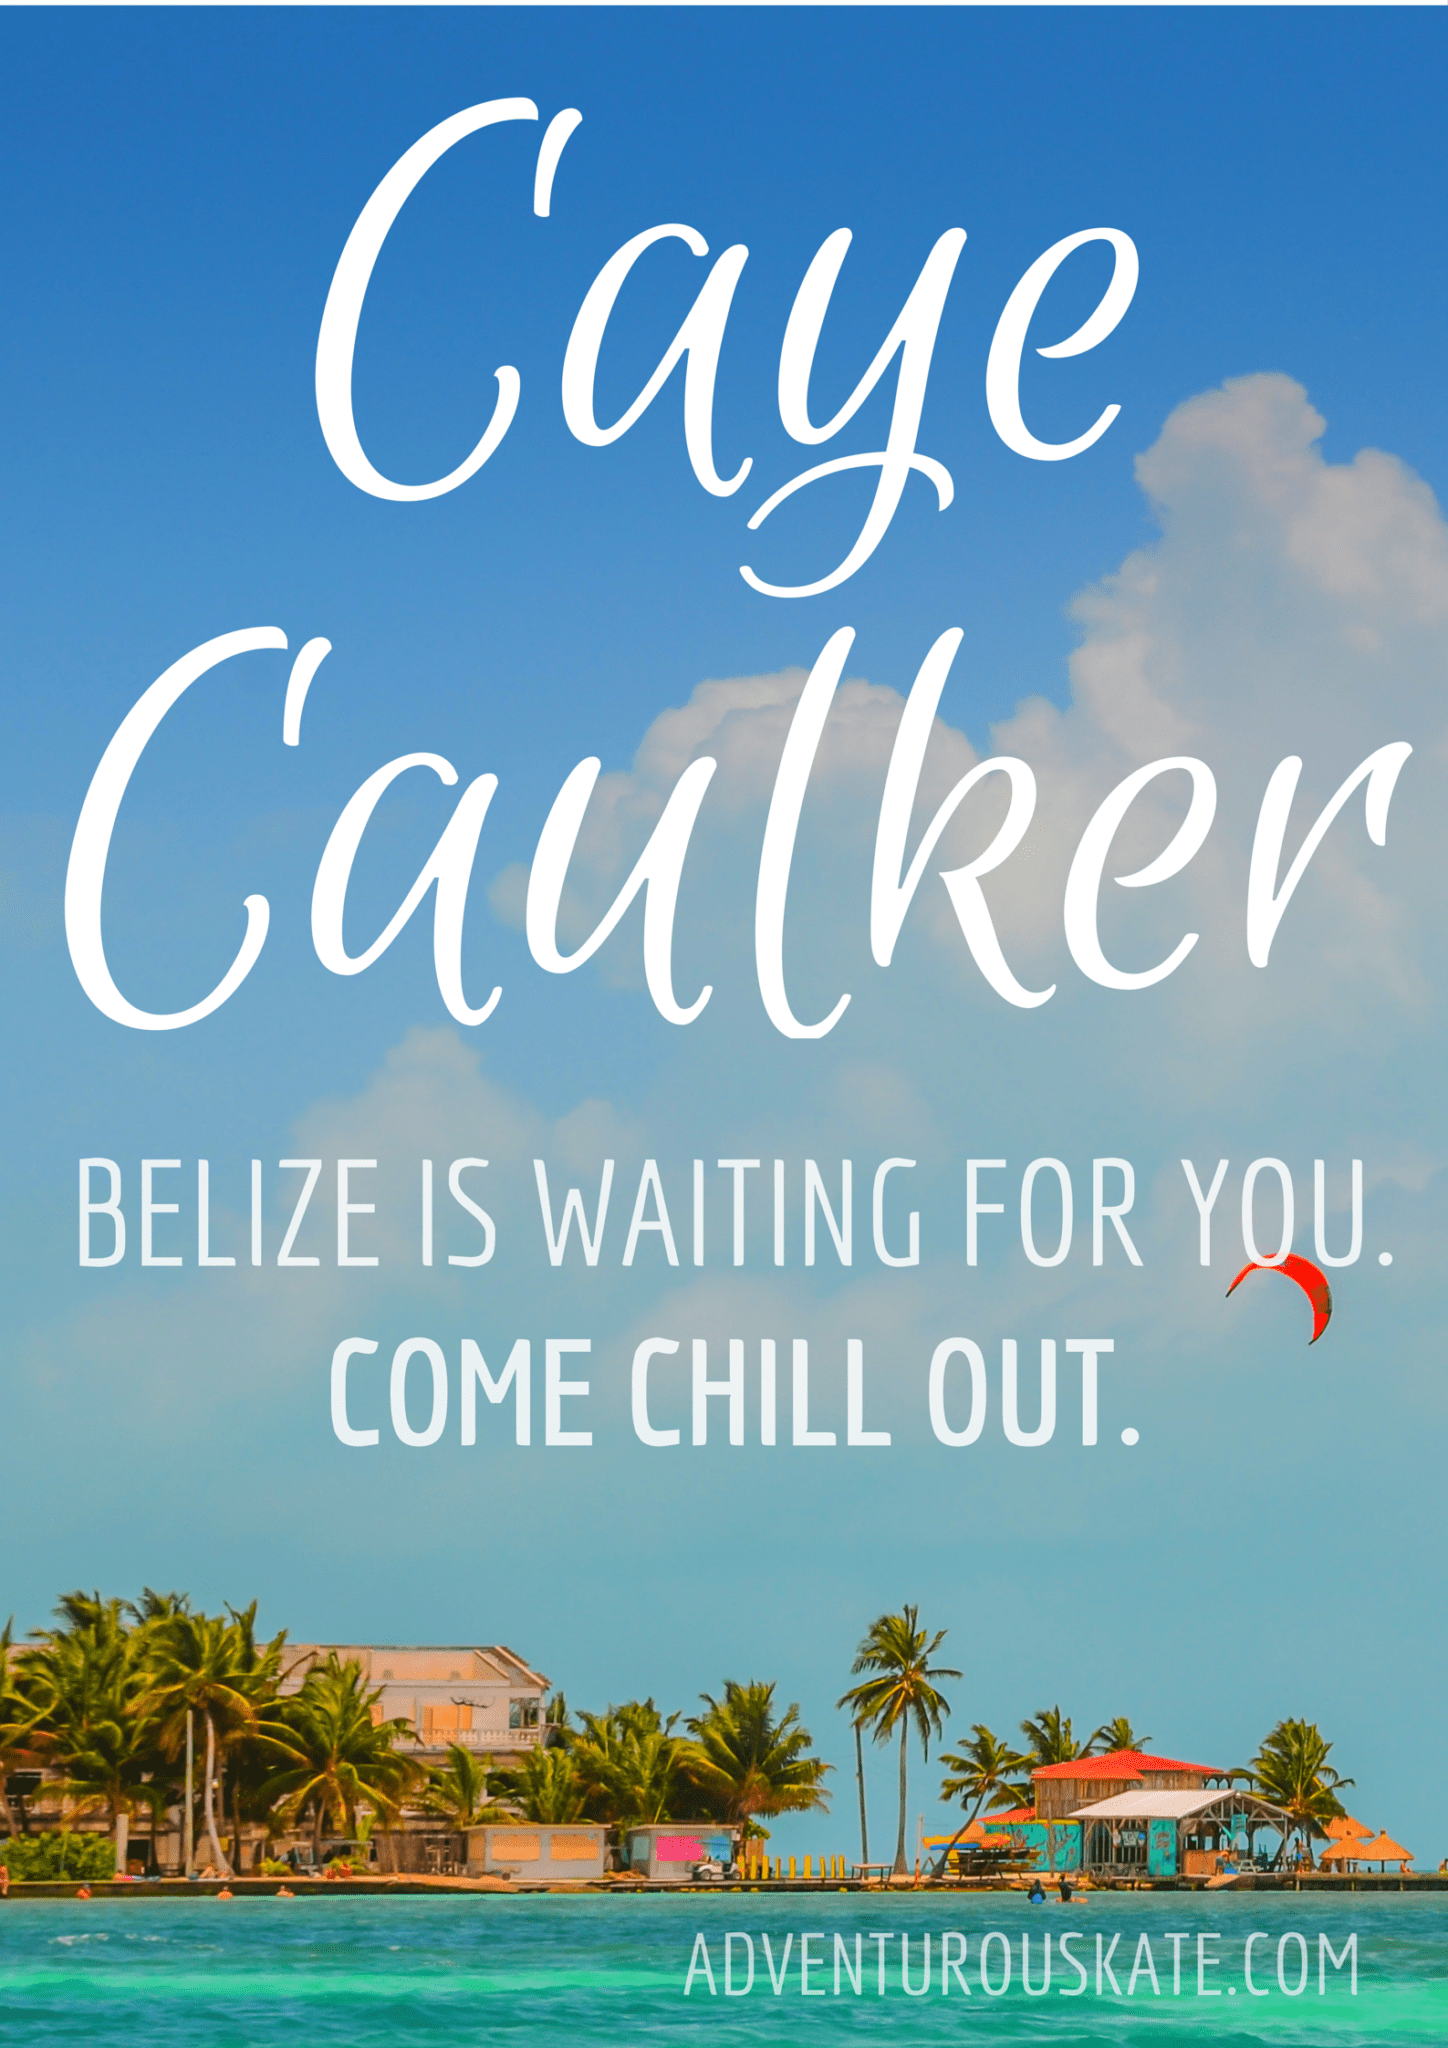 Caye Caulker, Belize, is waiting for you! via Adventurous Kate